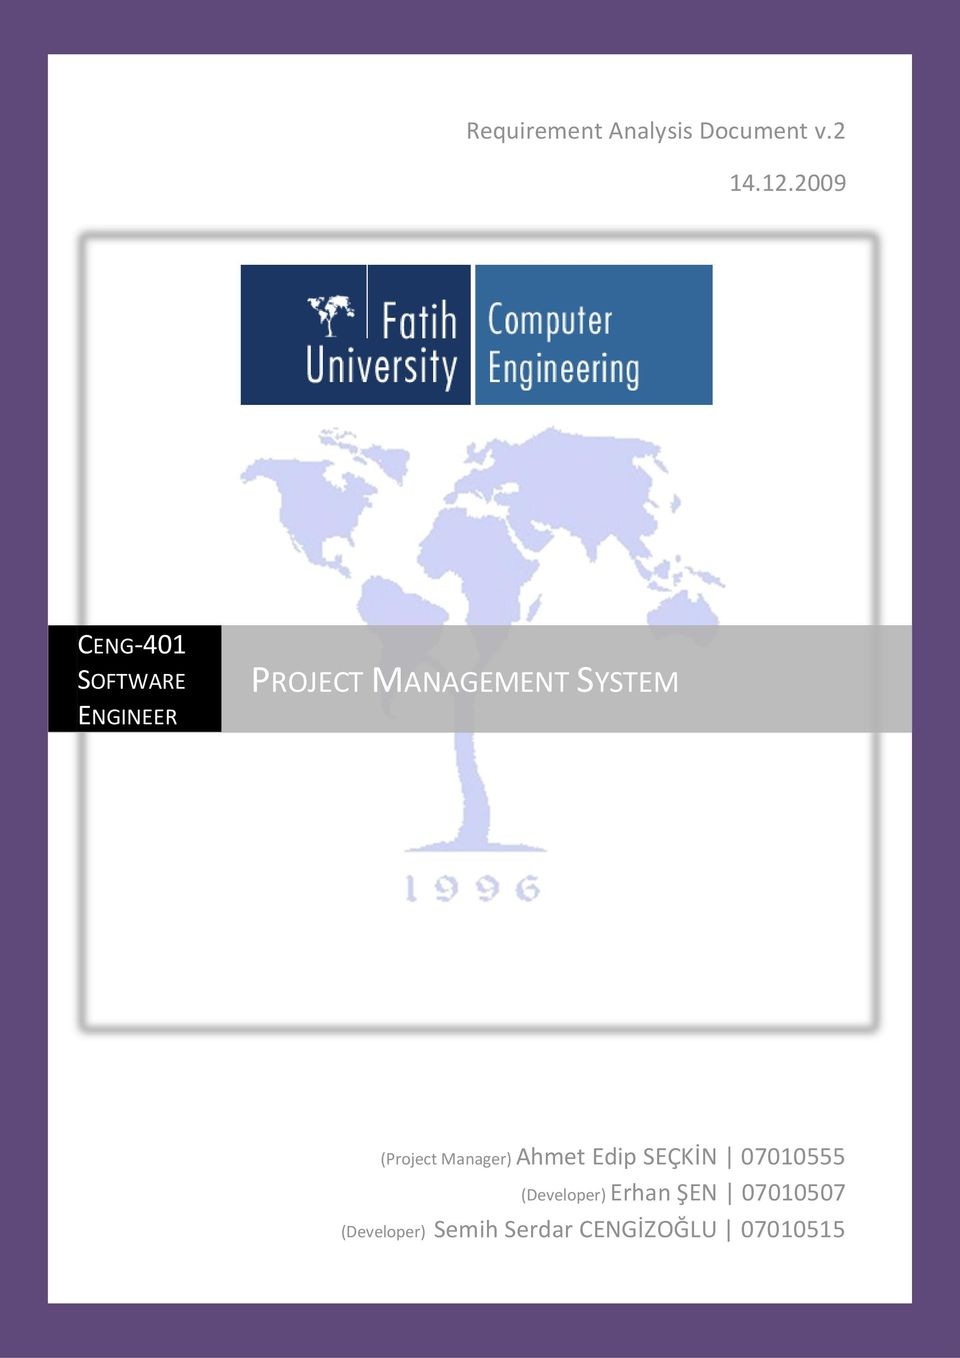 SYSTEM (Project Manager) Ahmet Edip SEÇKİN 07010555